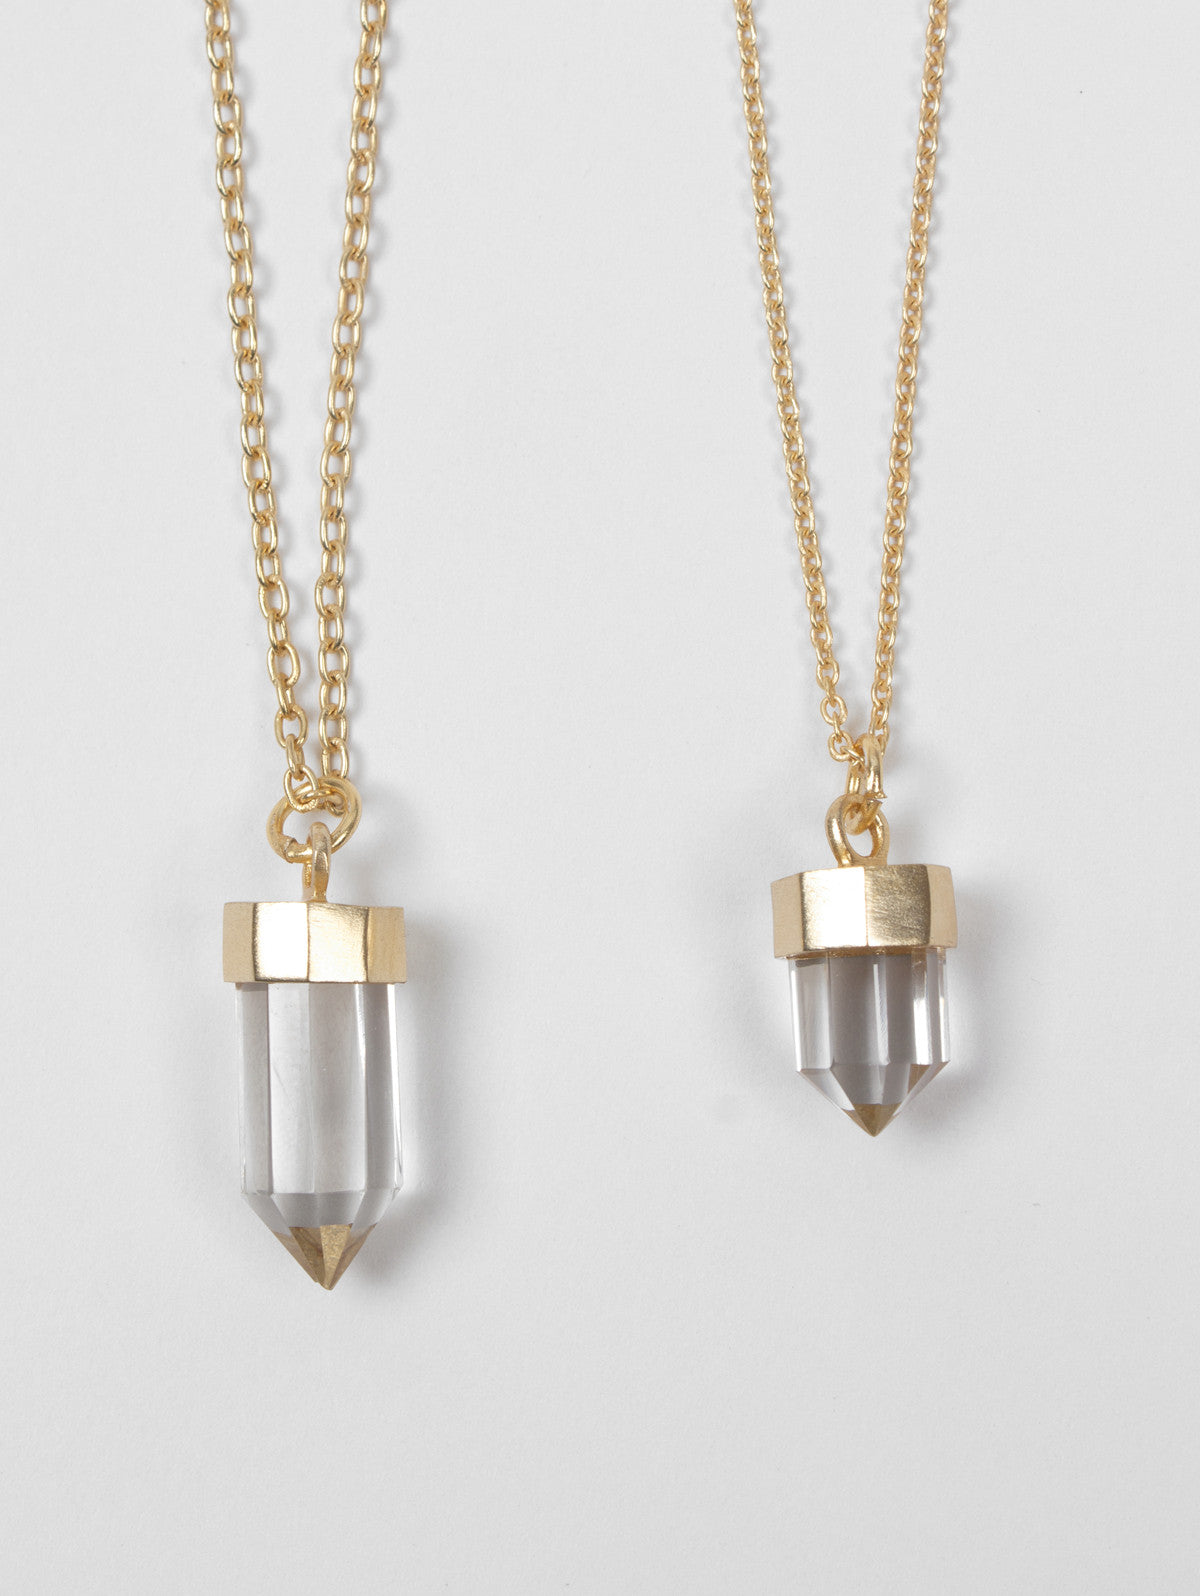 Crystal Bullet Necklaces